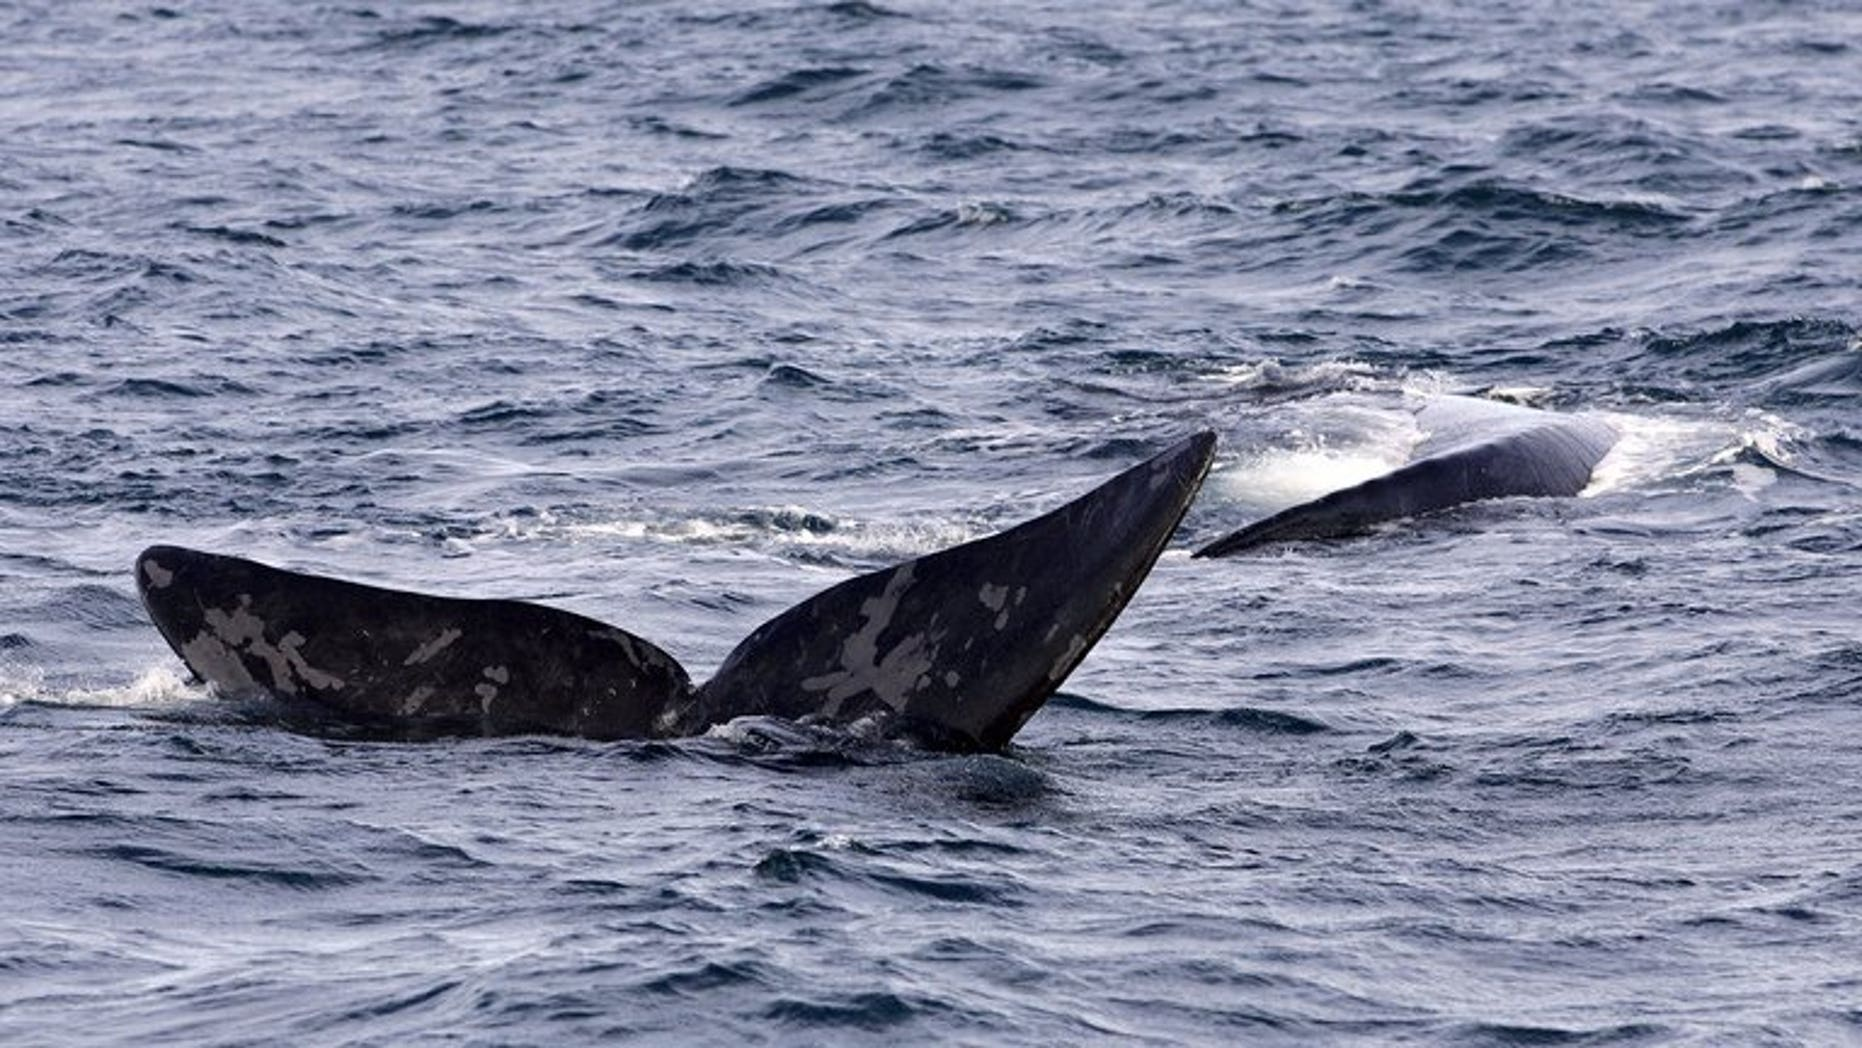 File photo of a Southern Right Whale displaying its fluke off the southern coast of Argentina. A rare southern right whale covered in what appear to be shark bites has washed up on an Australian beach, exciting scientists who Thursday said it will help boost knowledge of the species.